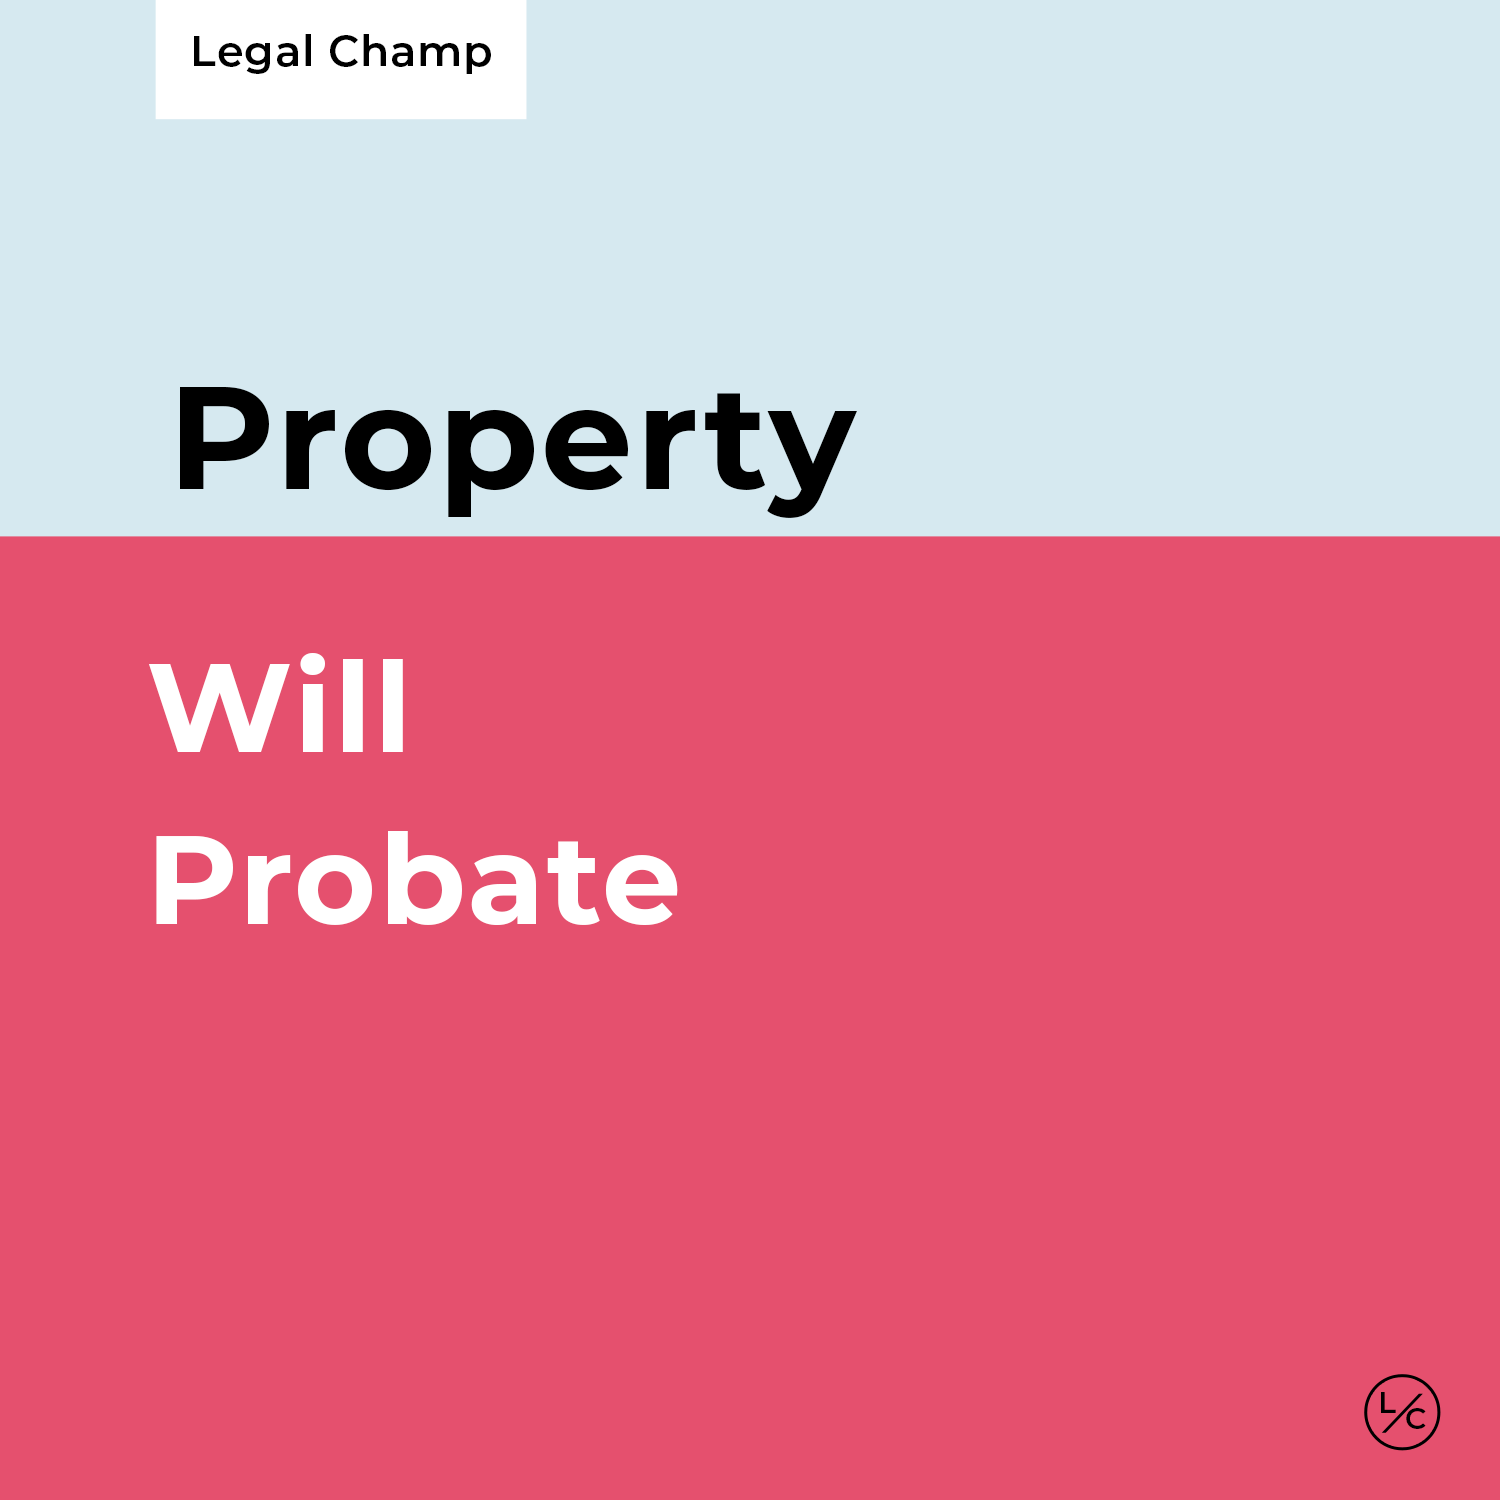 Will Probate